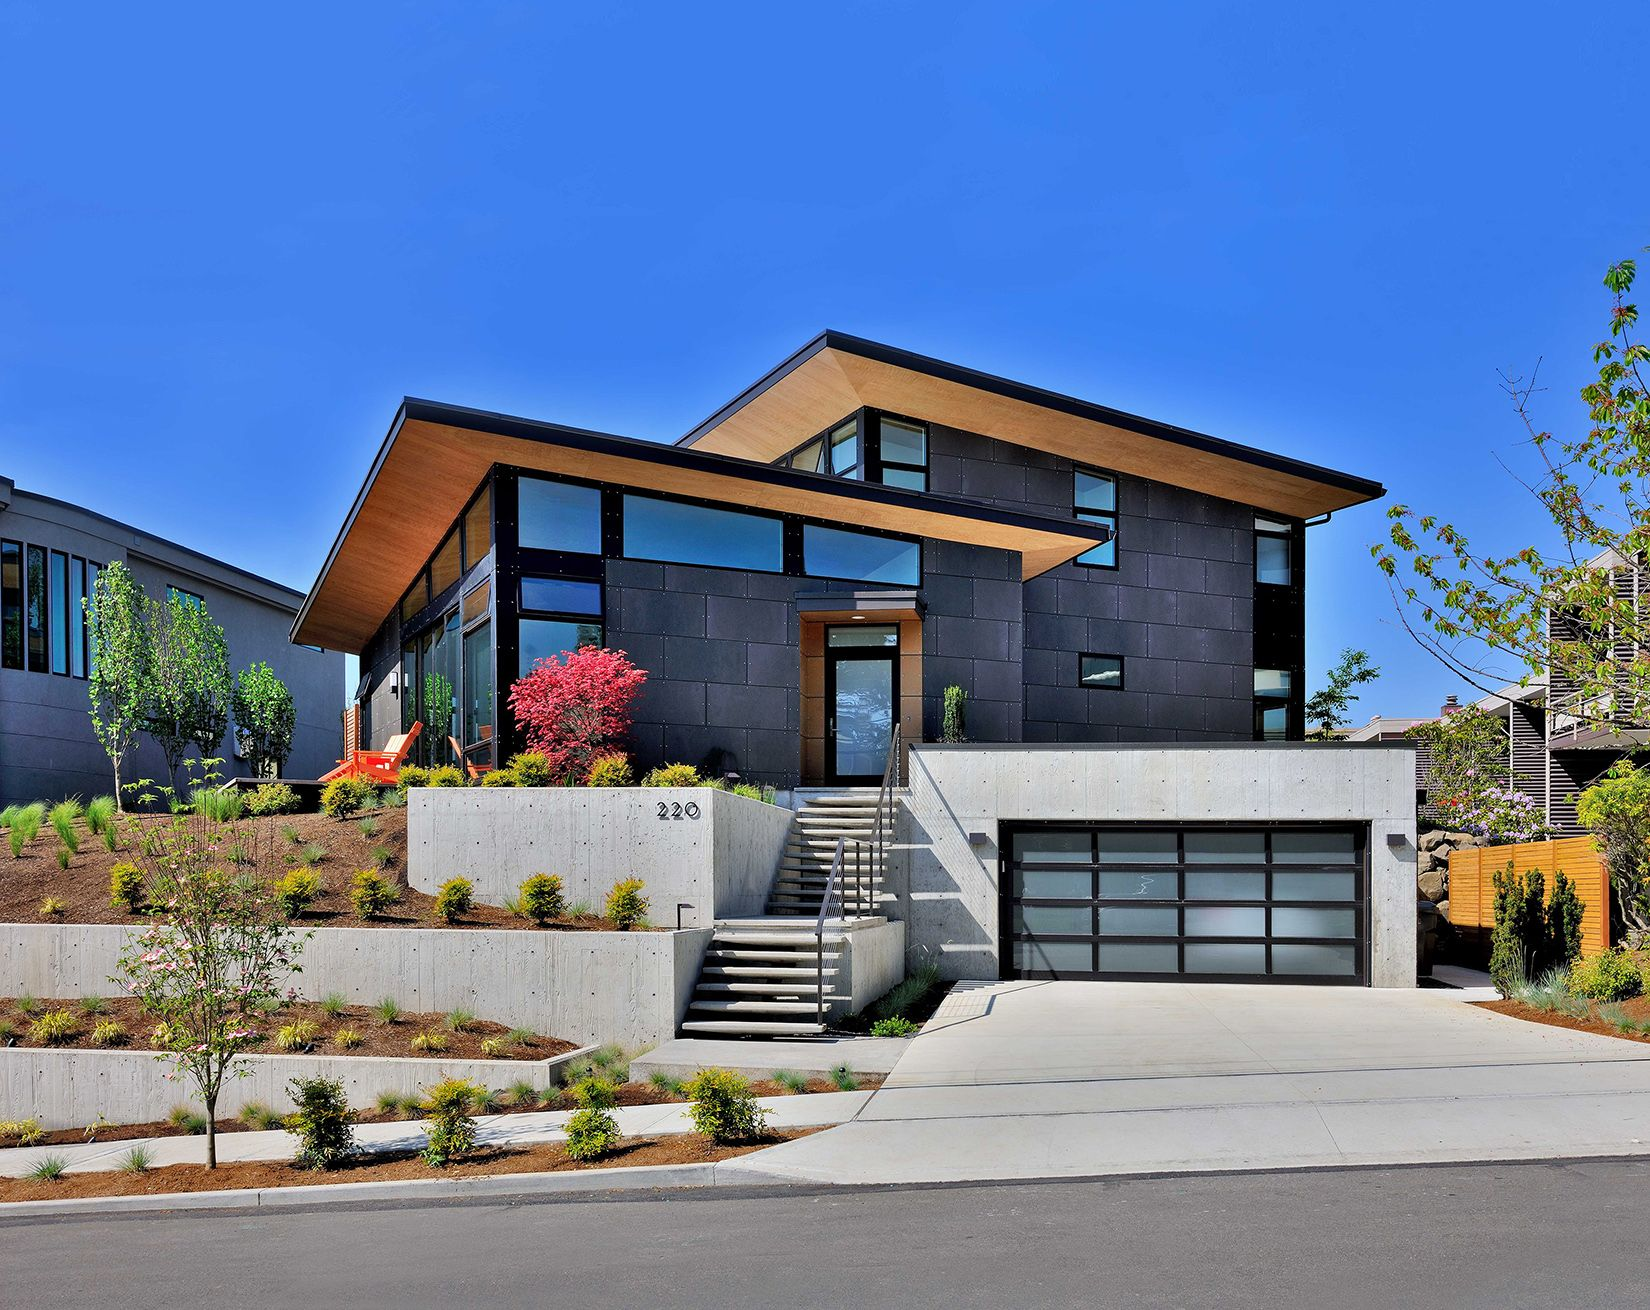 Best Nw Home Design Gallery - Amazing House Decorating Ideas ...